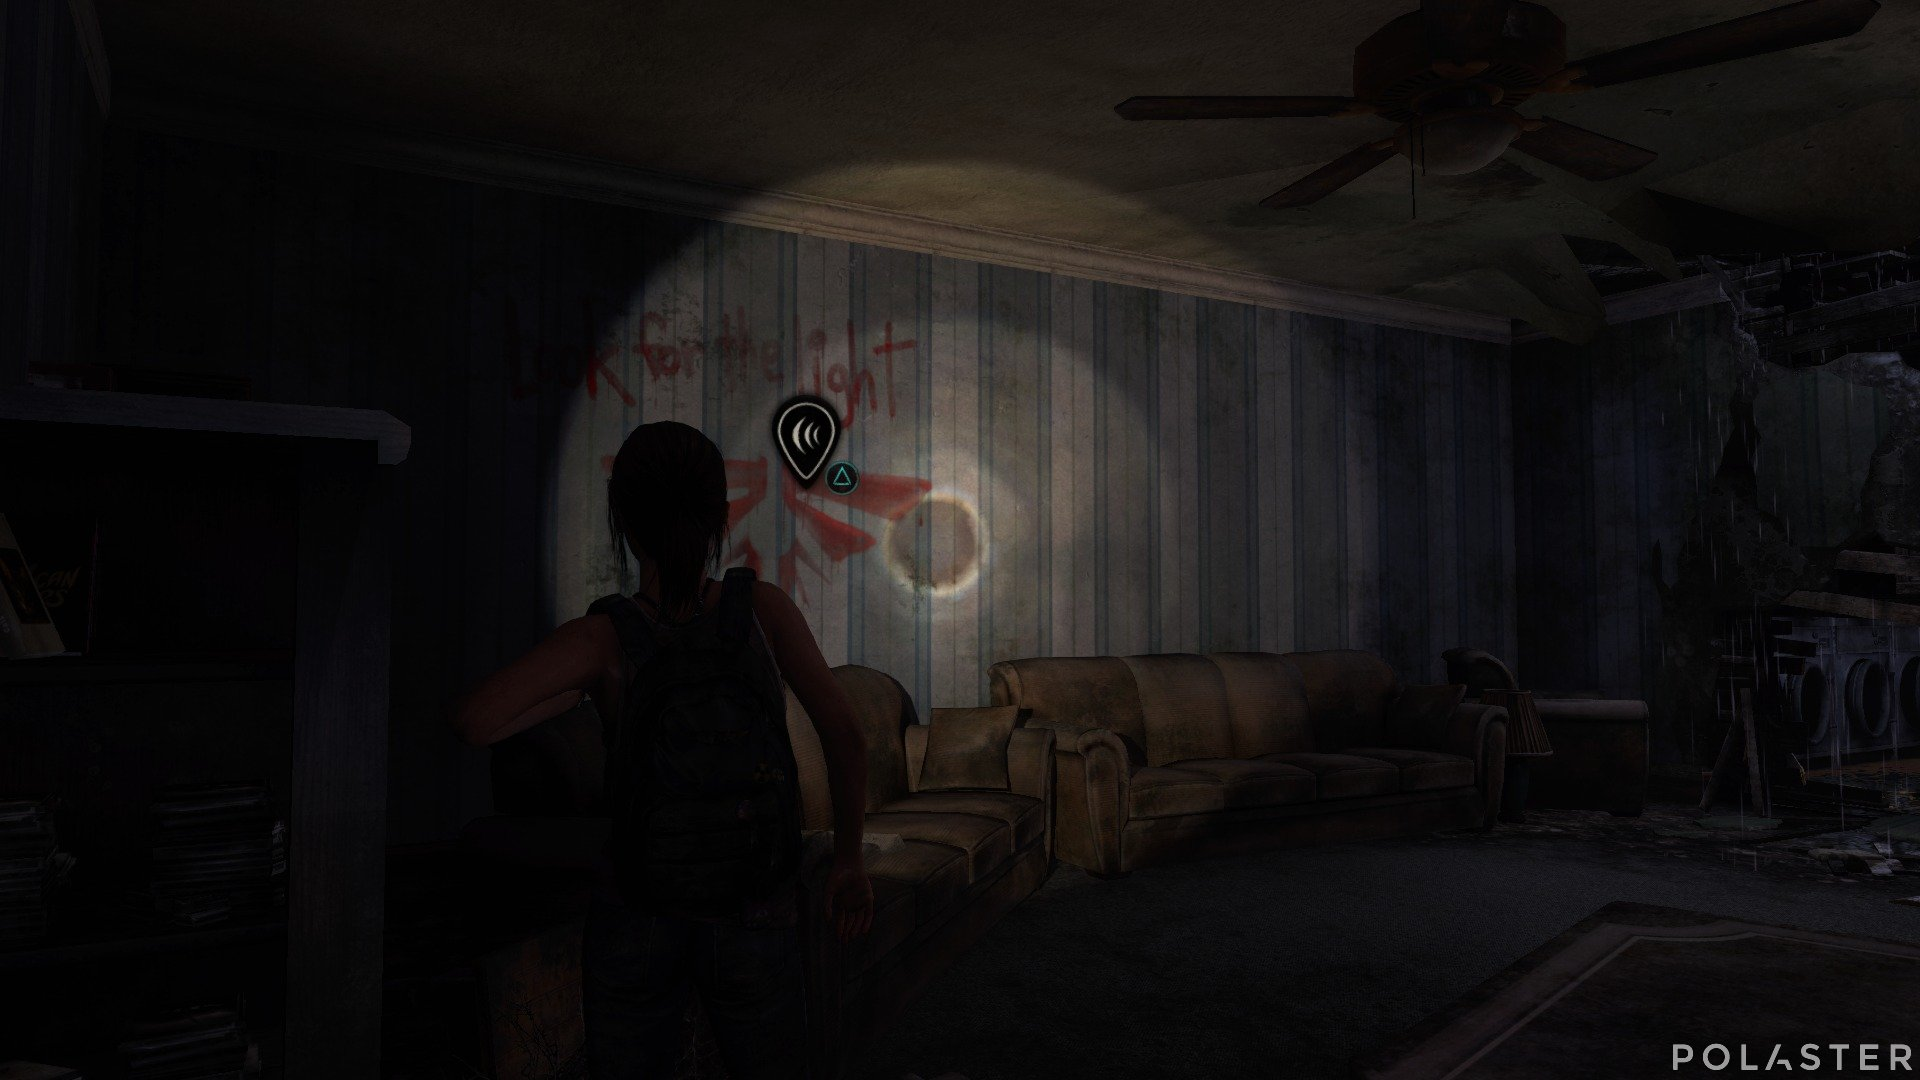 The Last of Us DLC Left Behind Conversación opcional